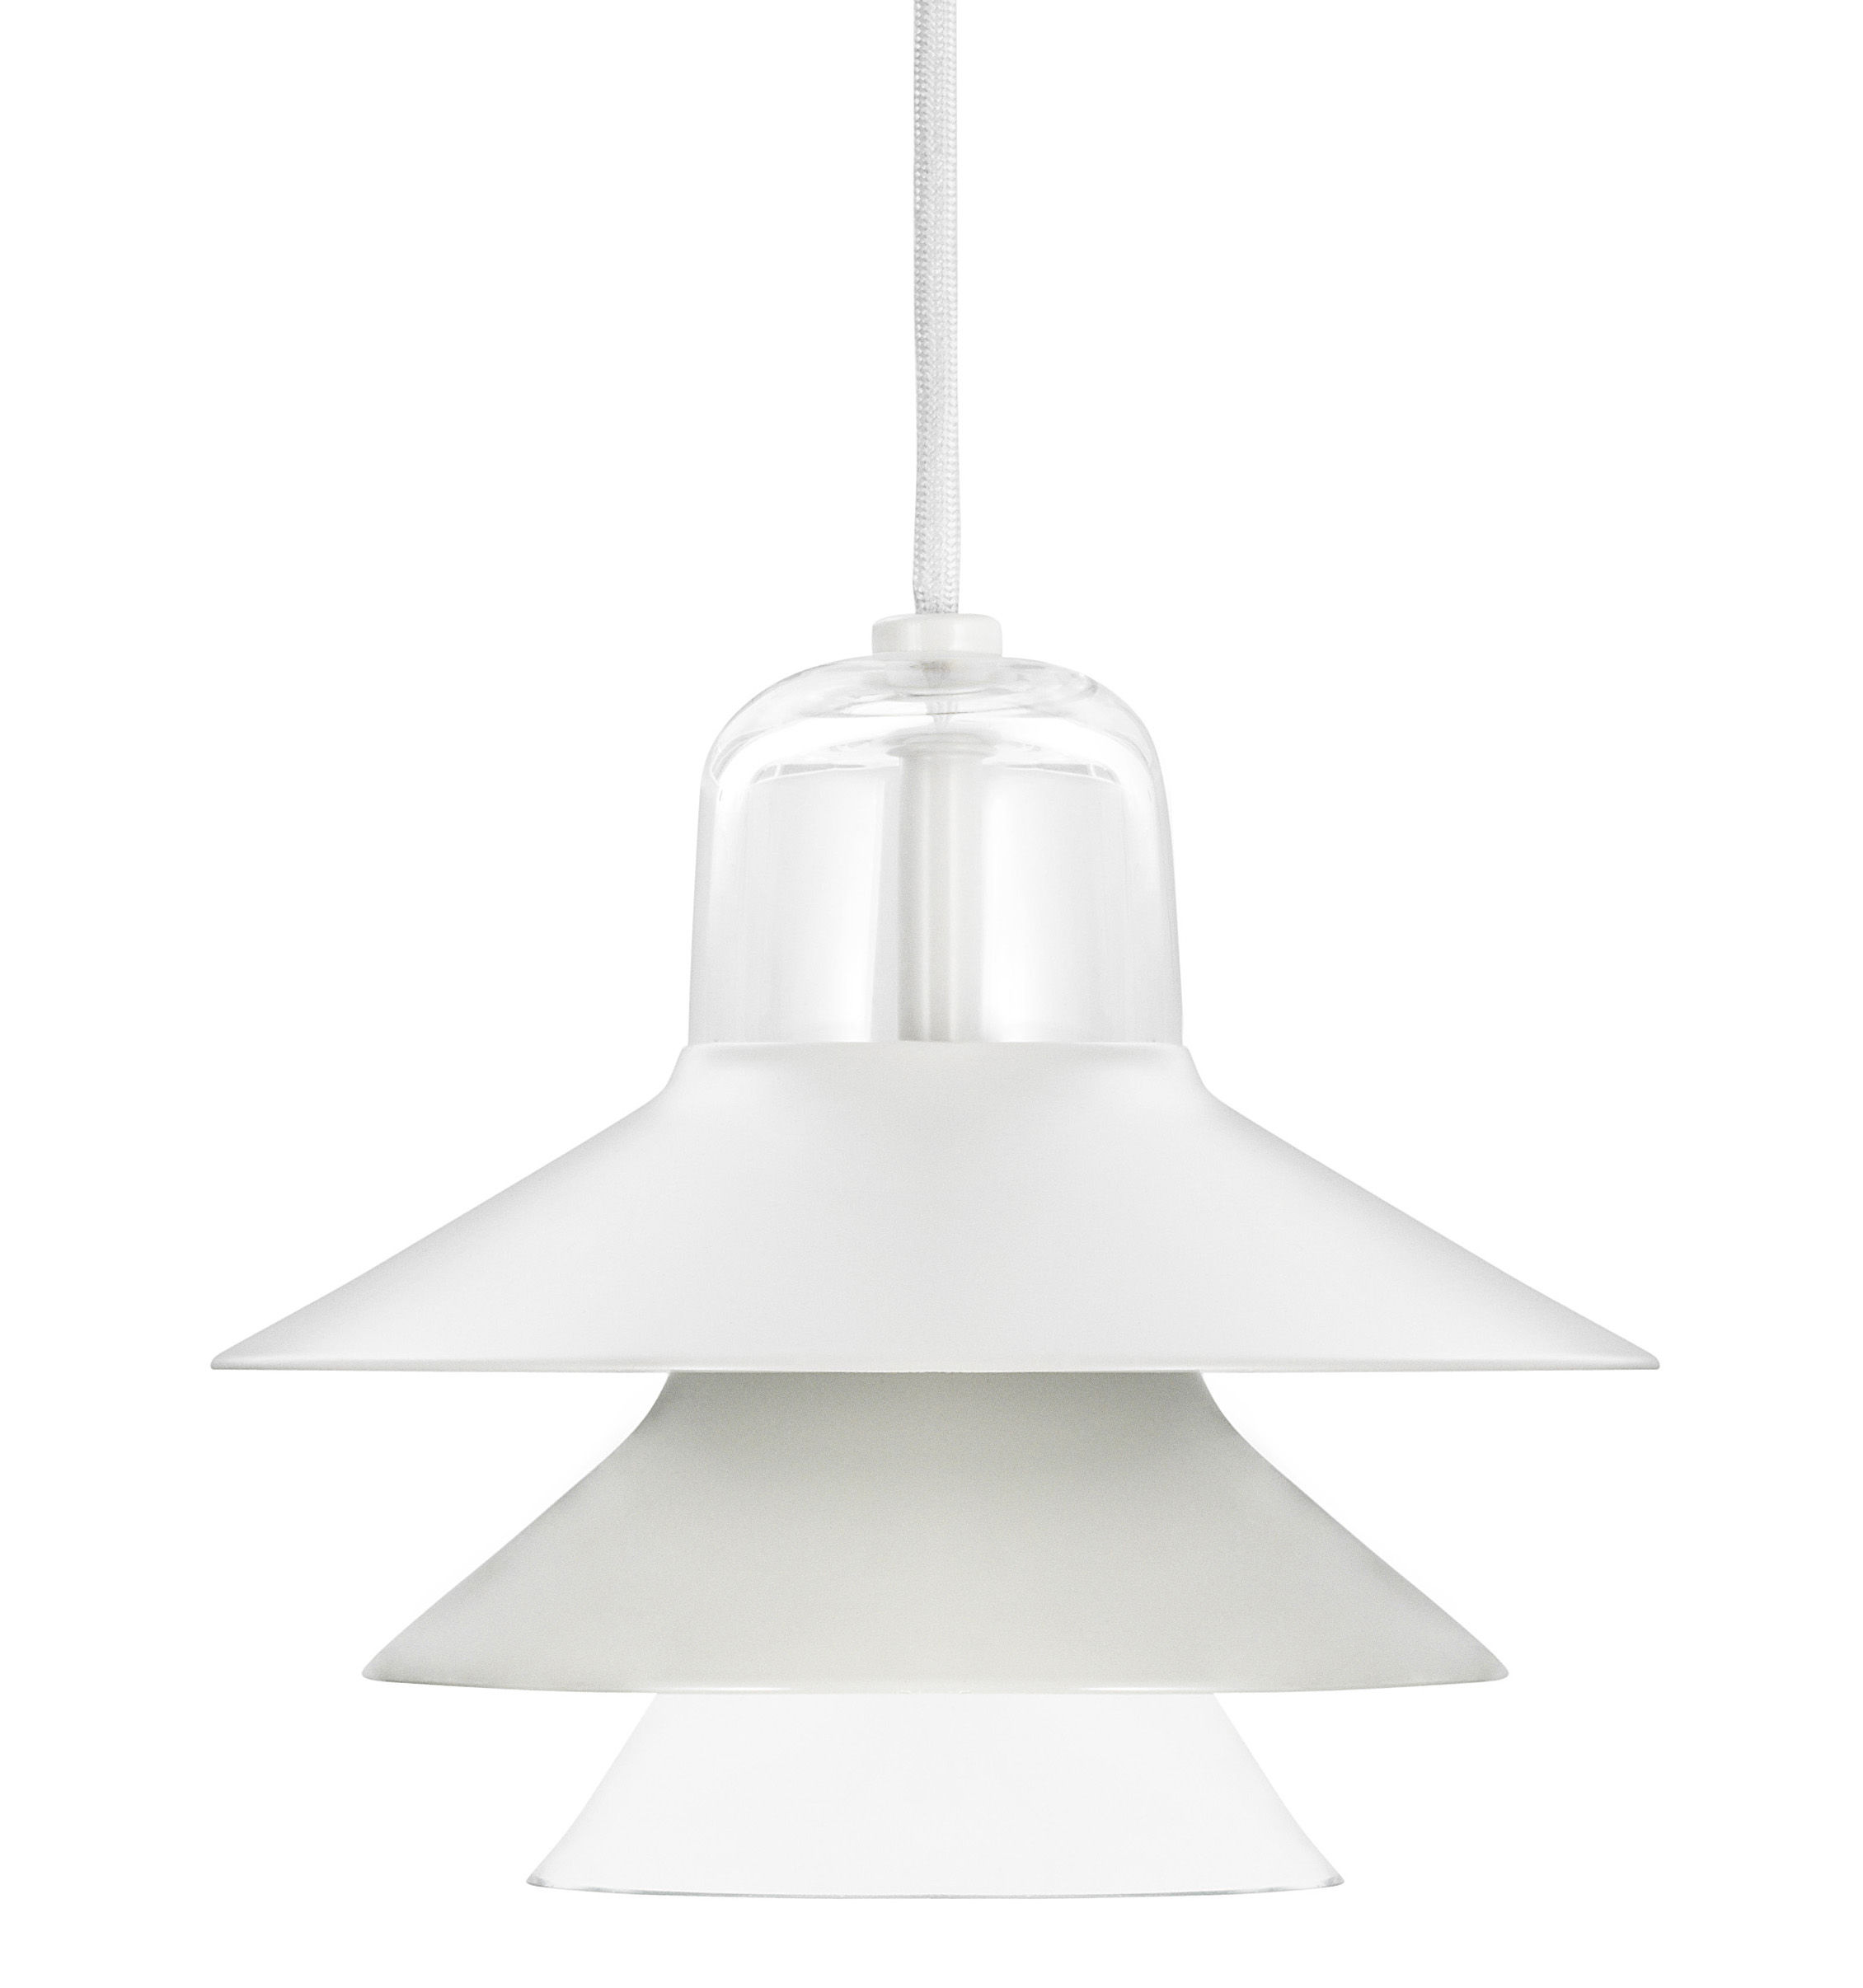 Lighting - Pendant Lighting - Ikono Small Pendant by Normann Copenhagen - Grey - Glass, Lacquered steel